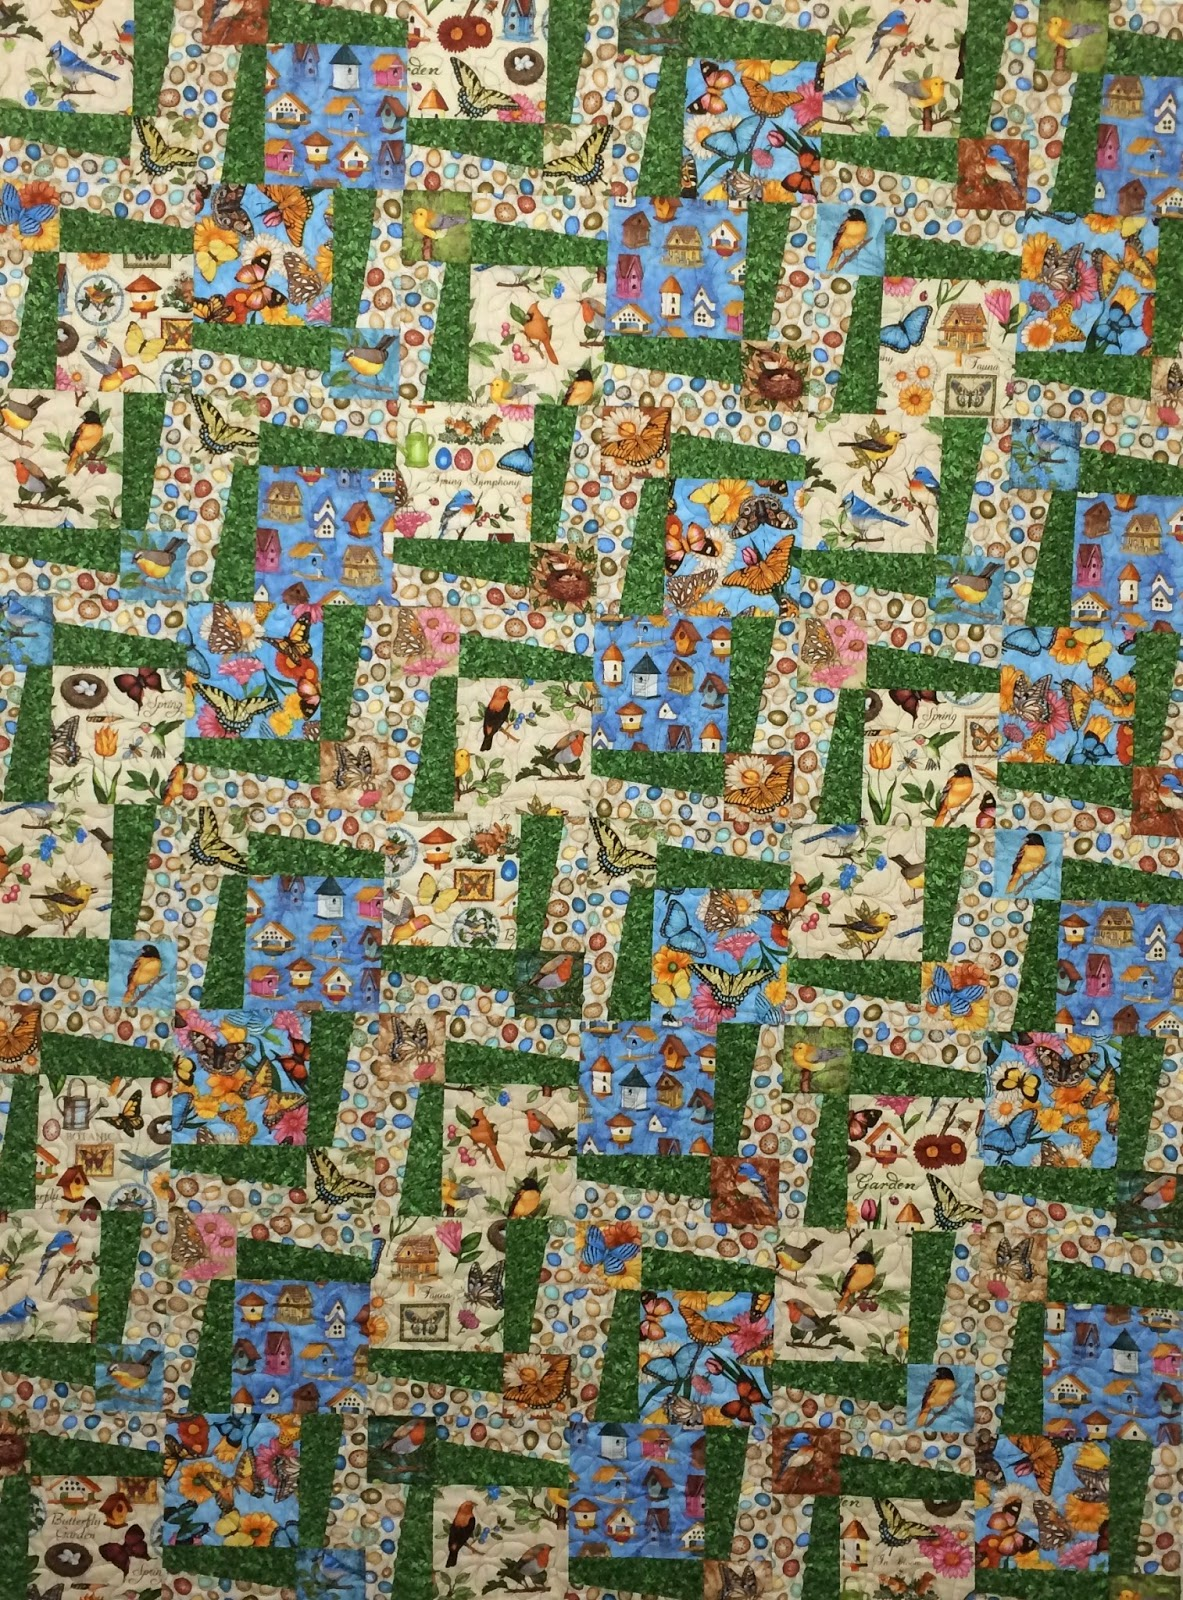 Leslie St. Onge Bird and Butterflies Quilt